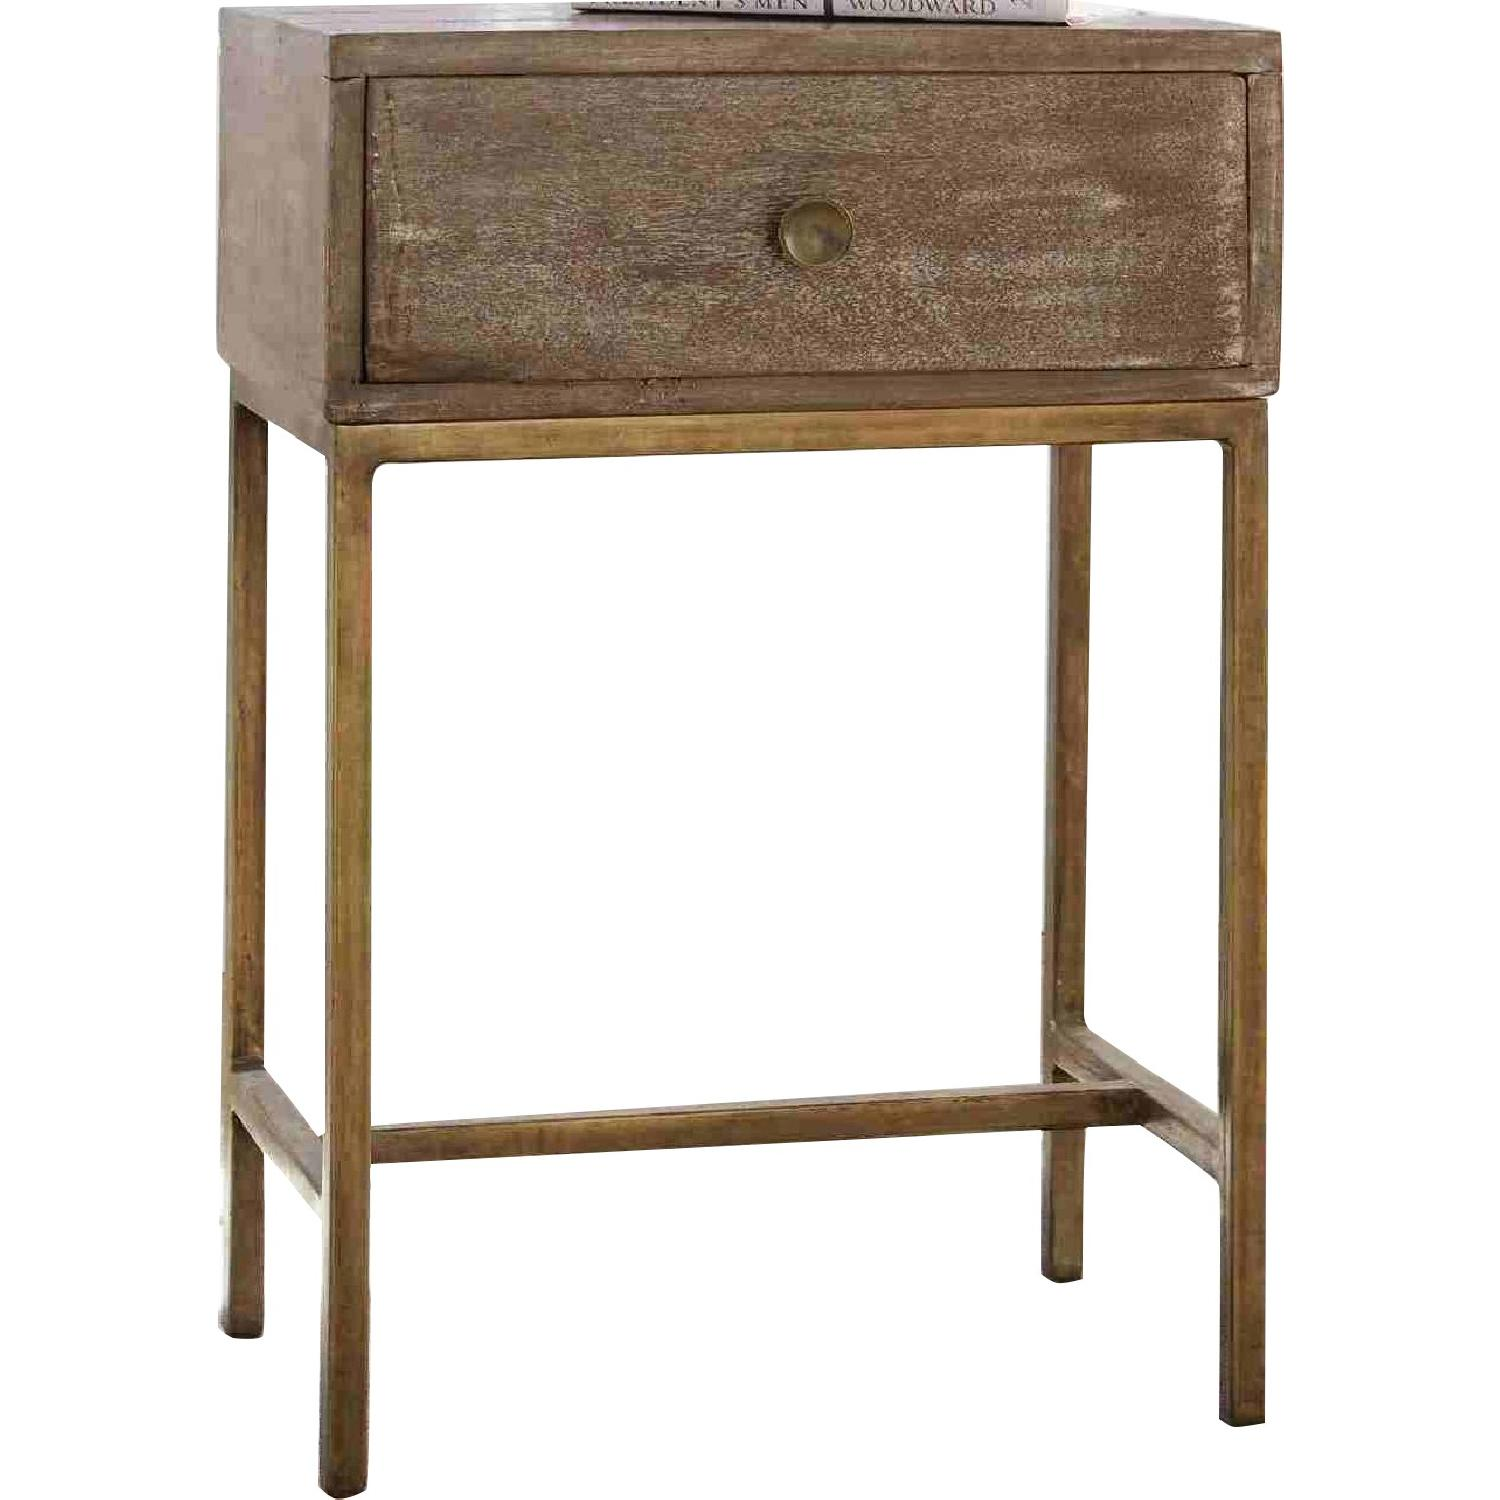 Accent Table w/ Drawer in Weathered Natural & Antique Gold - image-0